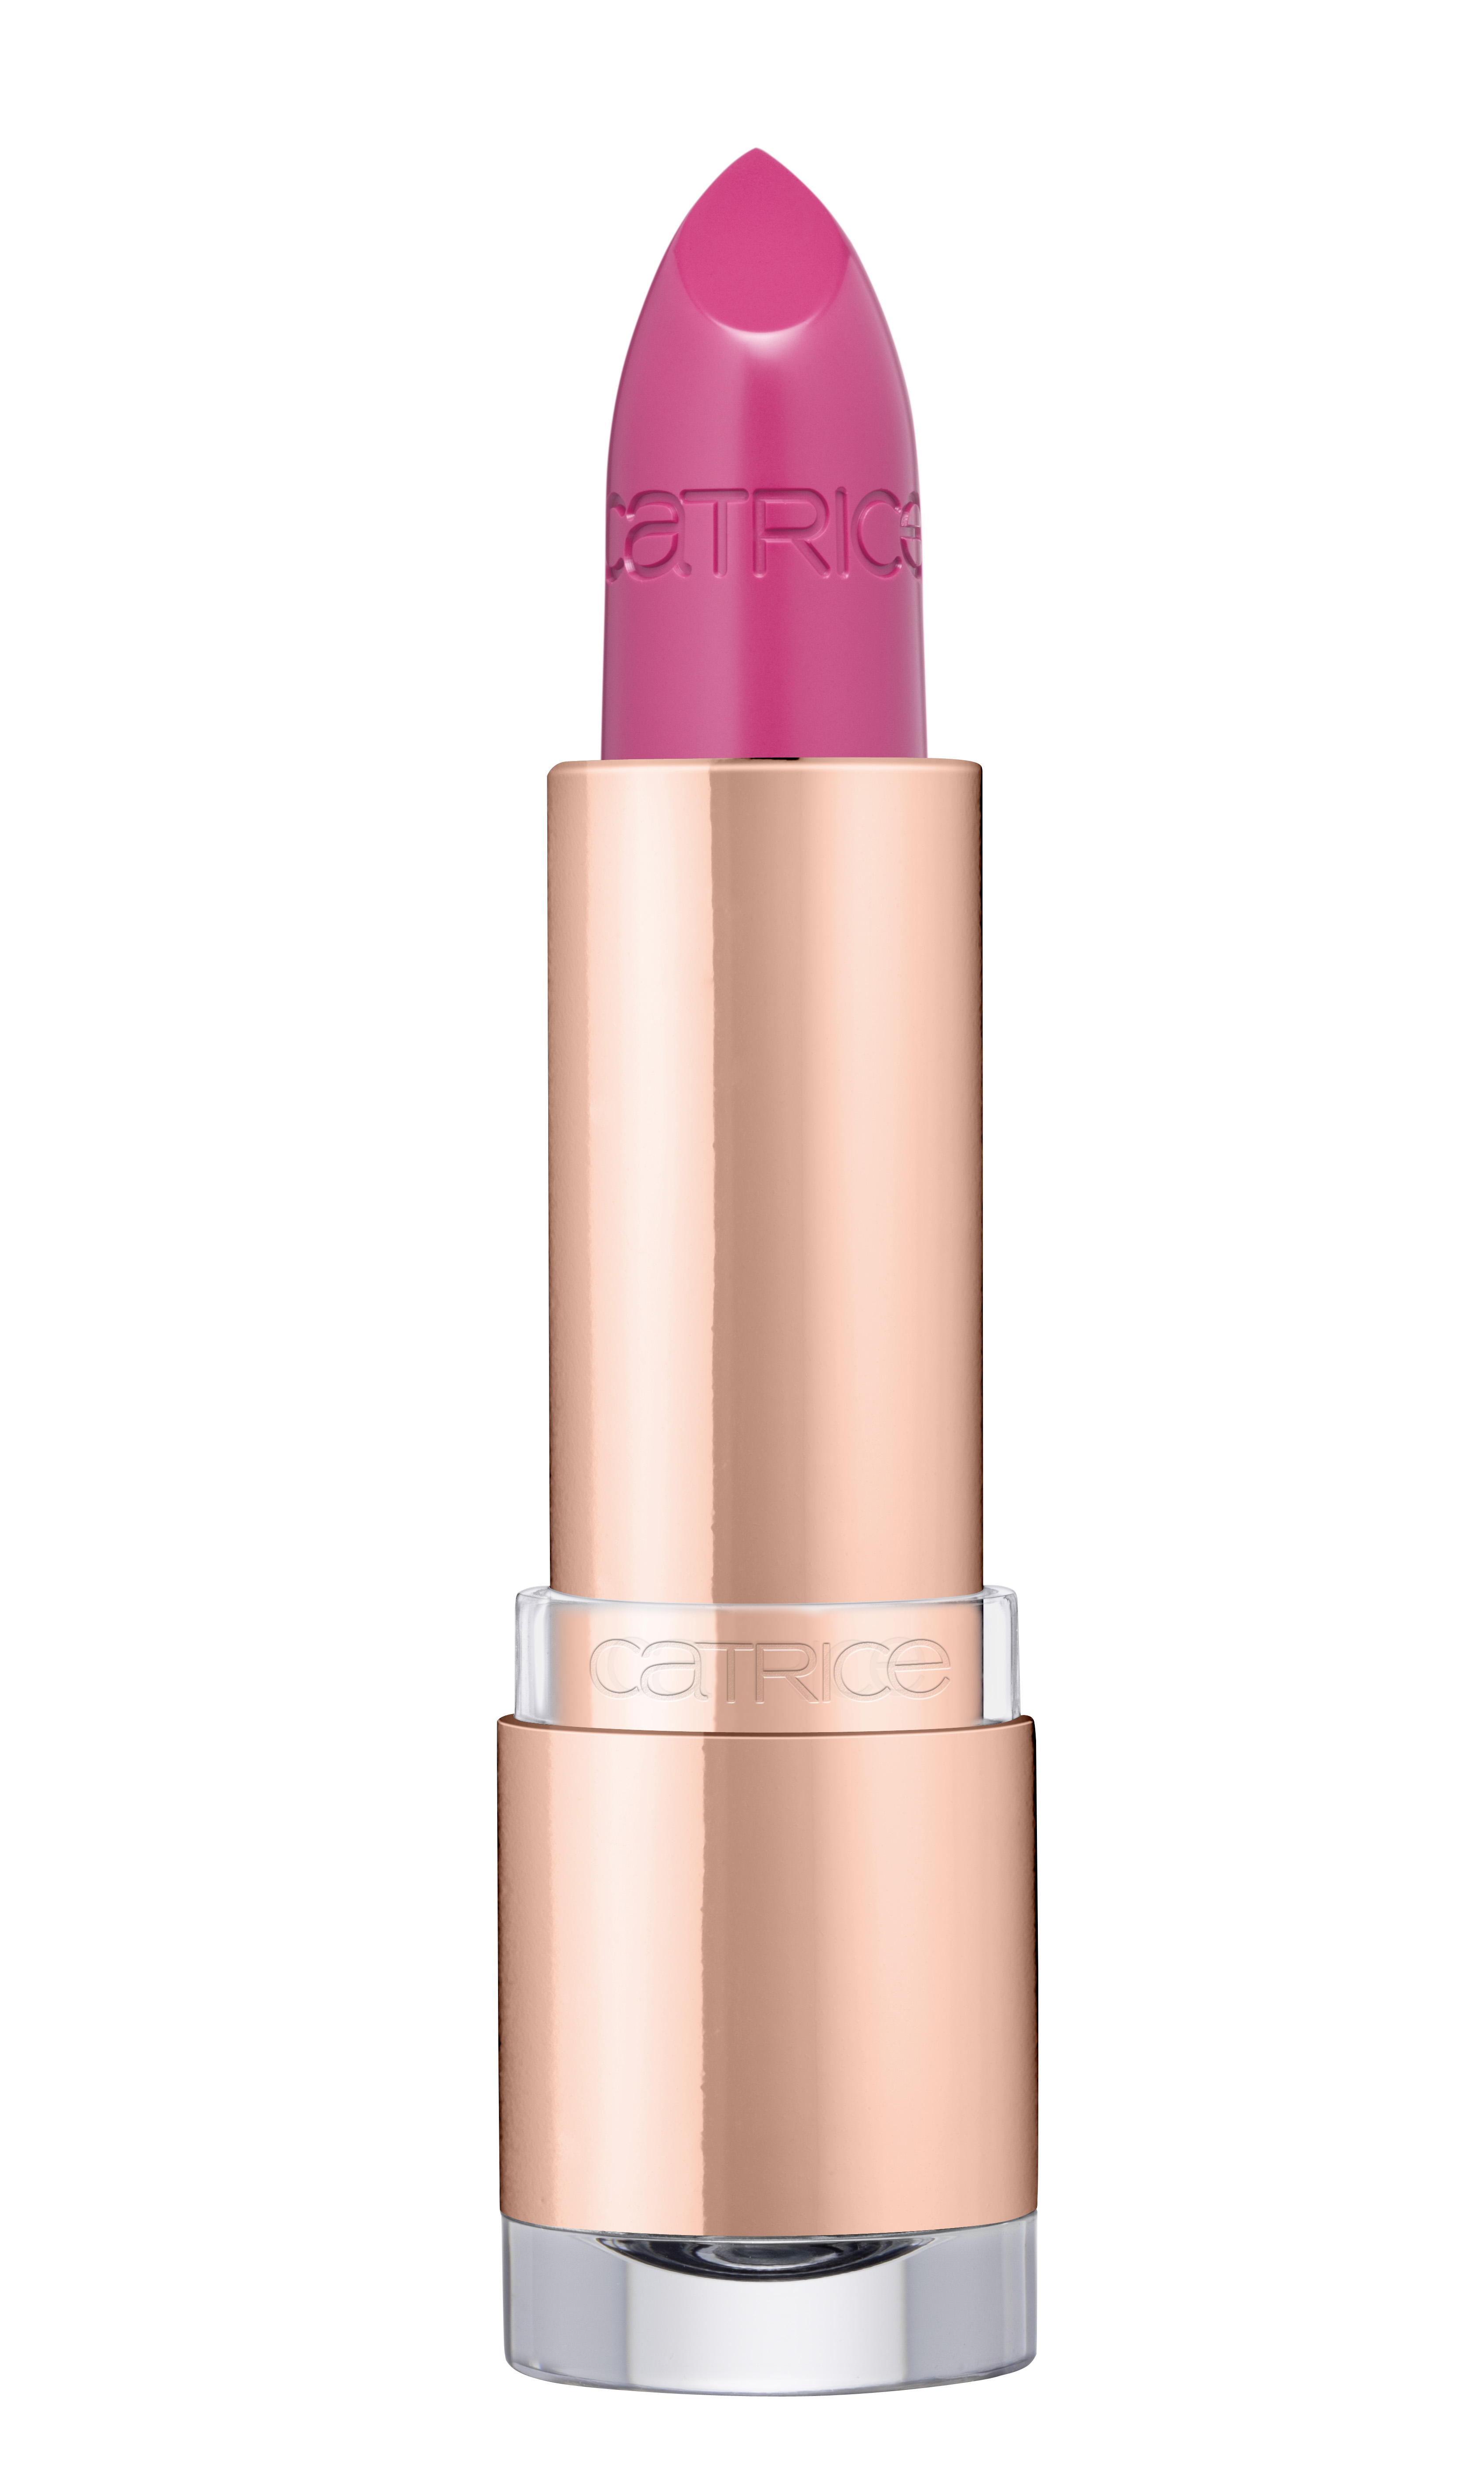 Catrice Metallure Lip Colour